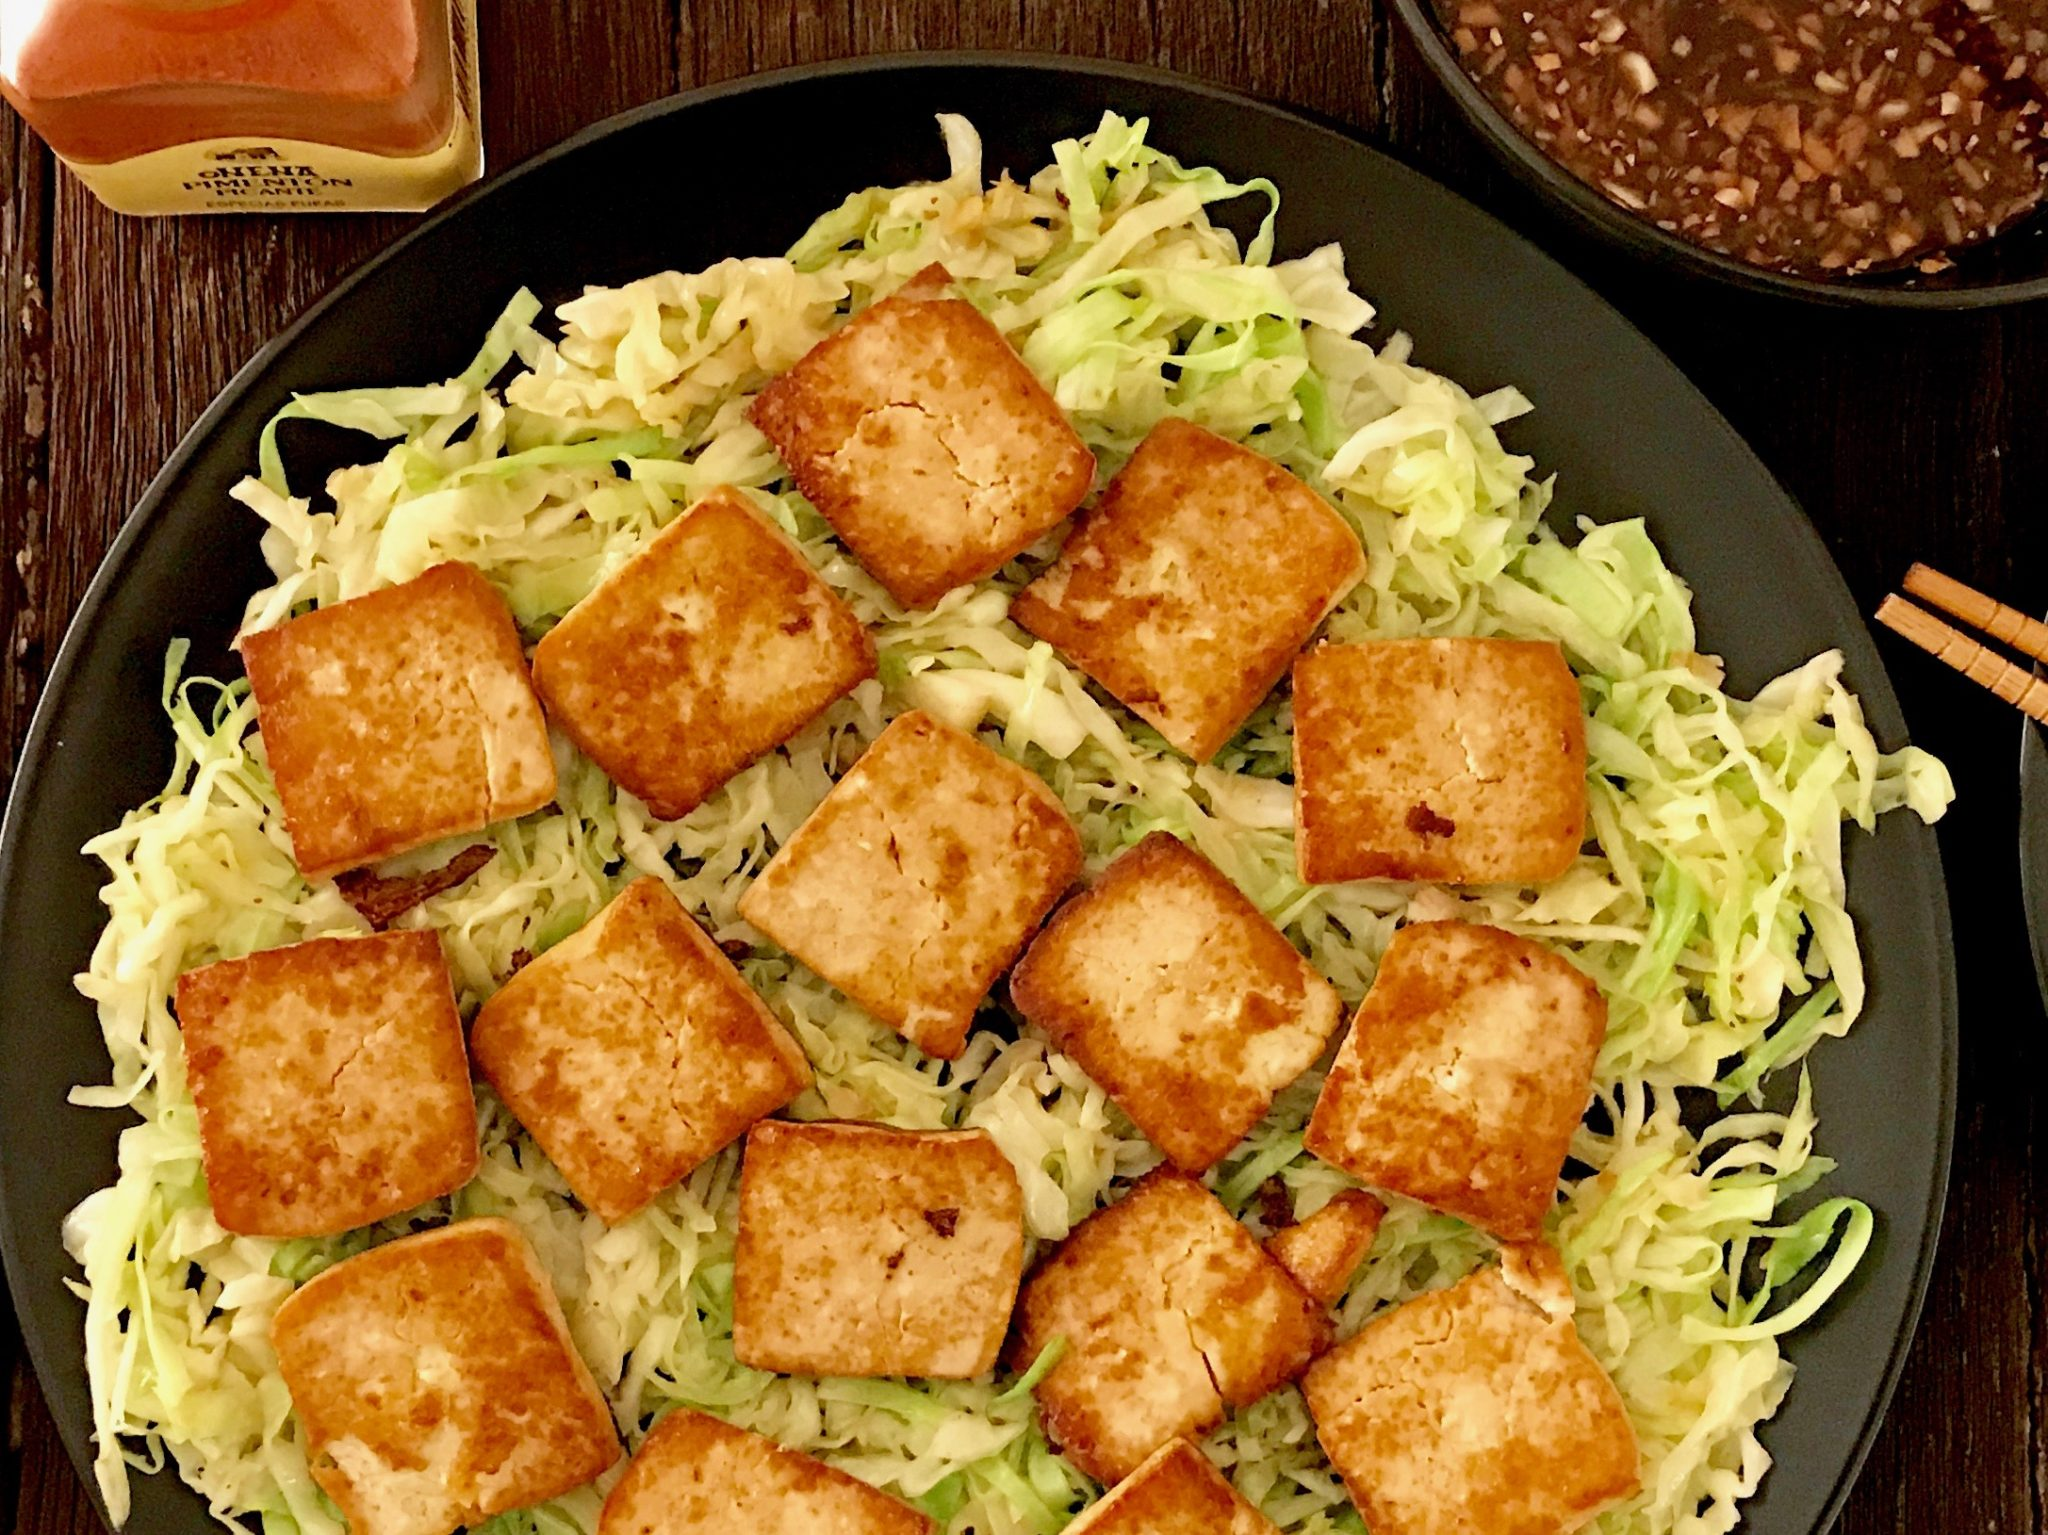 arranging the fried tofu on the sauteed cabbage